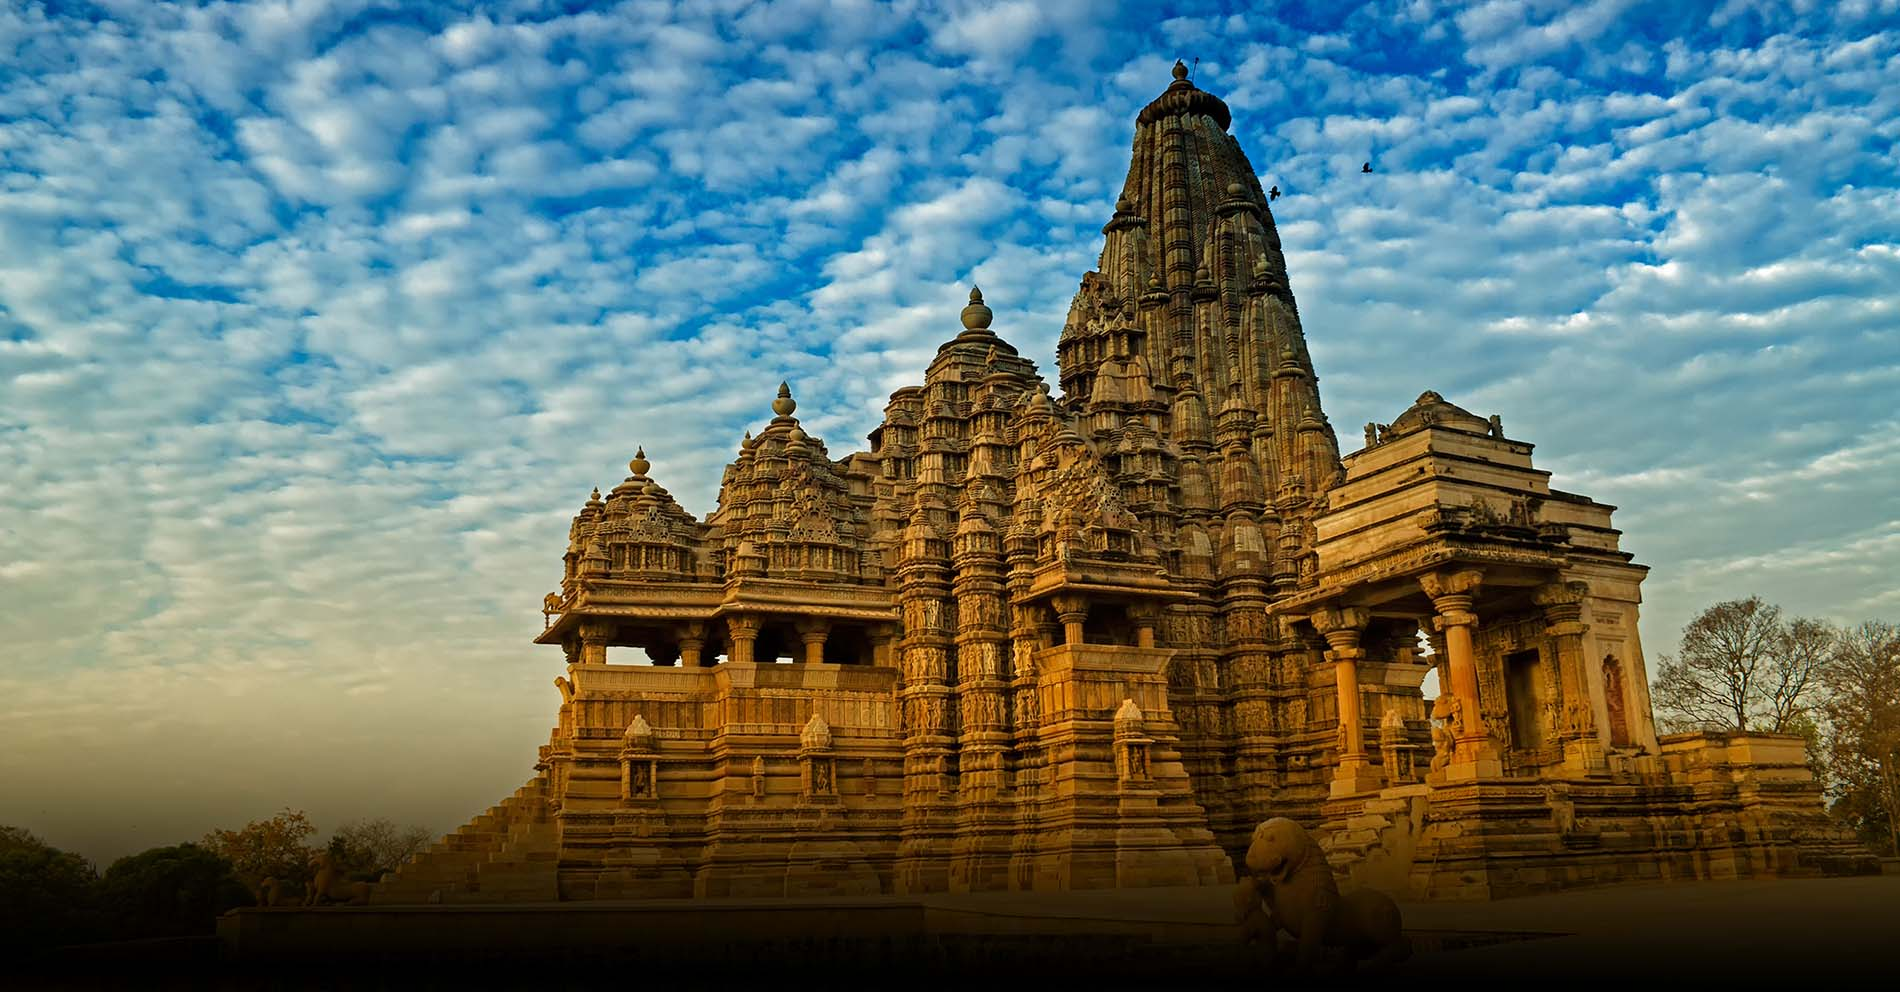 15 Famous Temples in India Everyone Should Visit